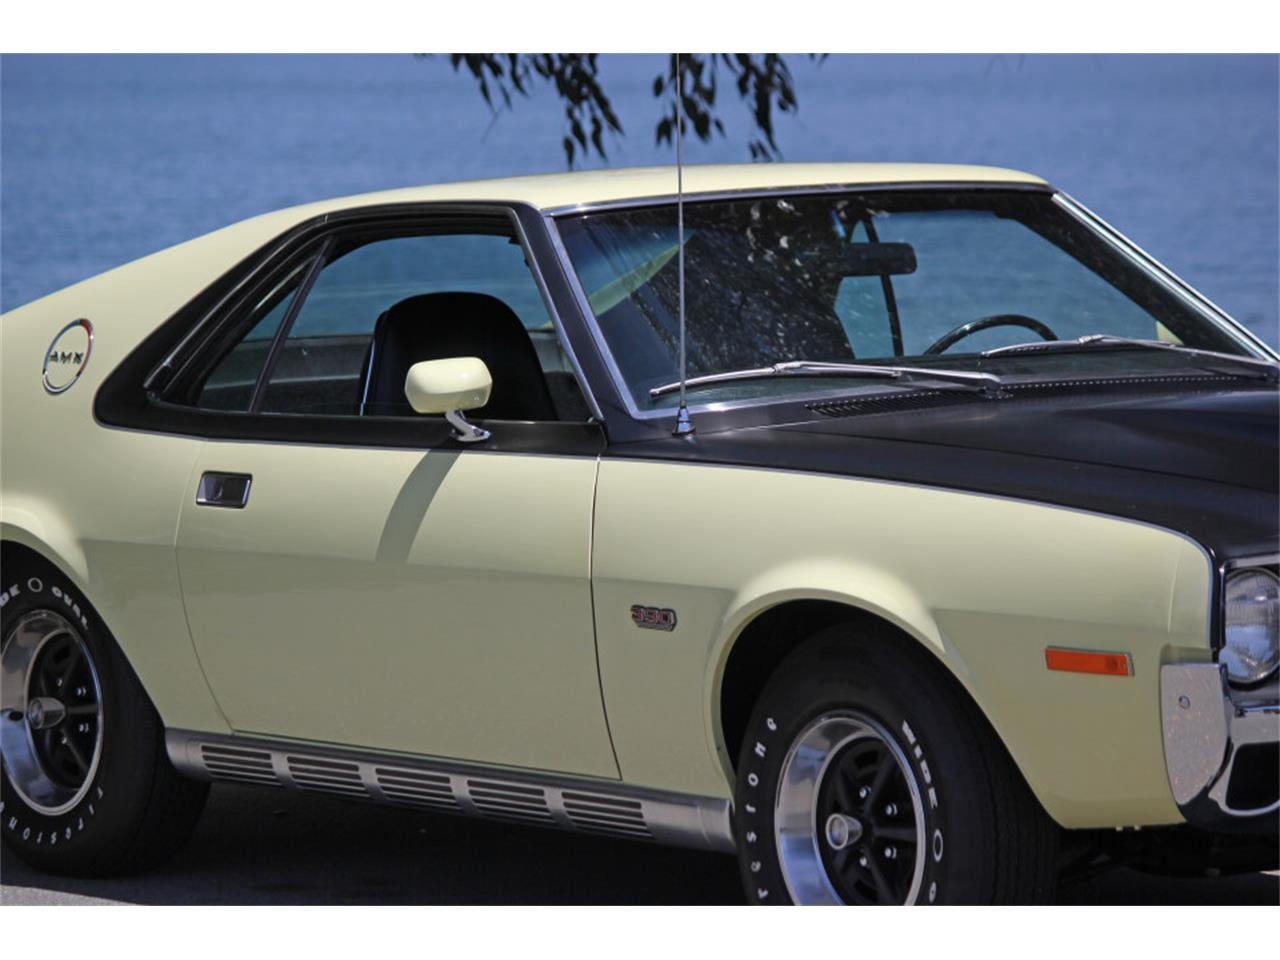 Large Picture of Classic 1970 AMX located in California Offered by Precious Metals - QCFB